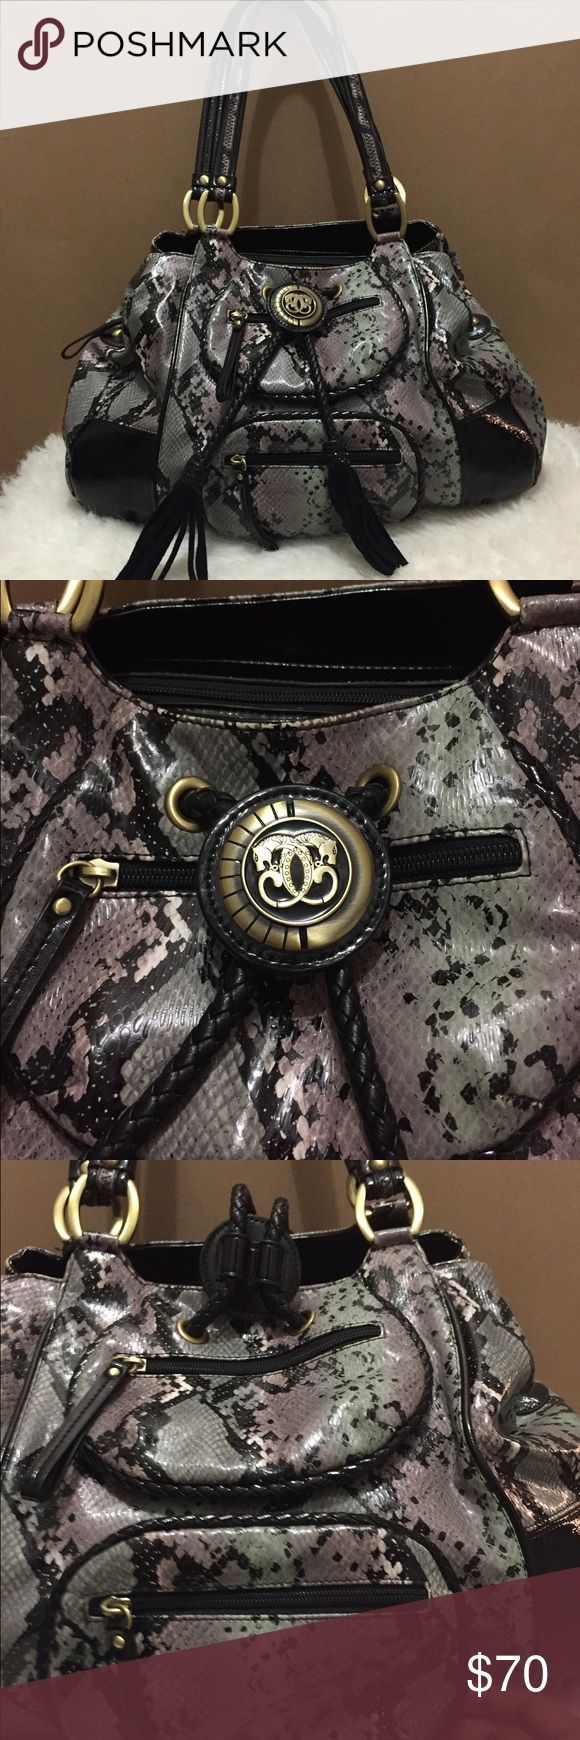 🐉 original!!by Sharif 1827 Hobo Purse🐉 This bag is a head turner and perfect for a girl with a fire personality. It has 3 very spacious compartments with zipper pockets and cell phone holder. As seen on HSN.  Sharif handbags are known for their uniqueness in design. The Sharif family actually began producing handbags in Egypt in 1827. original by Sharif Bags Hobos